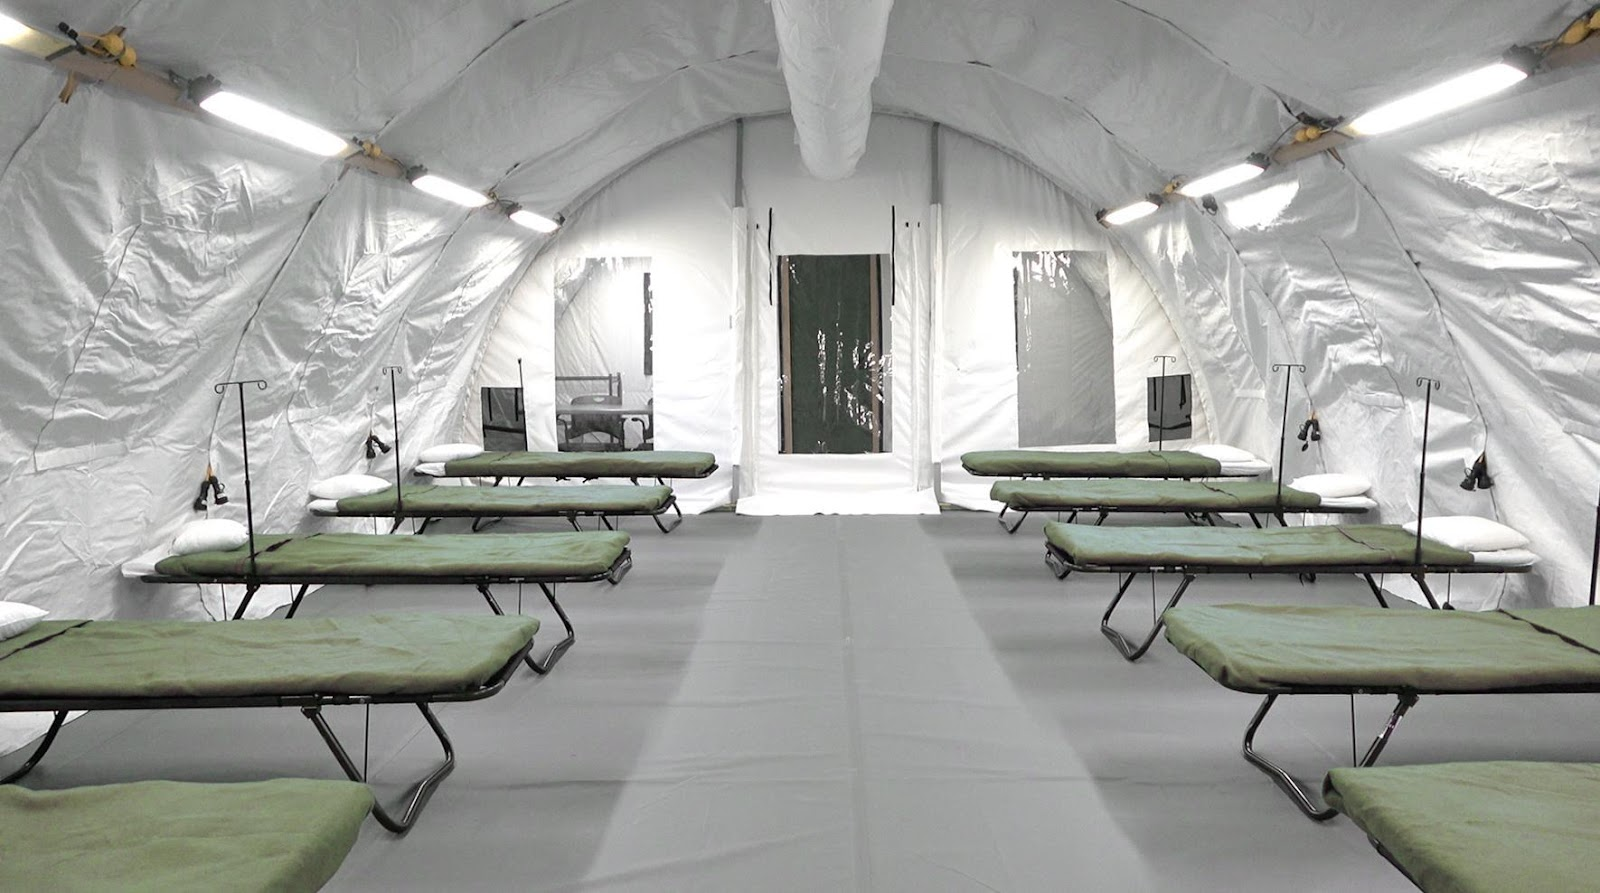 Mobile field hospital with negative pressure isolation systems from Alaska Structures donated to South Africa